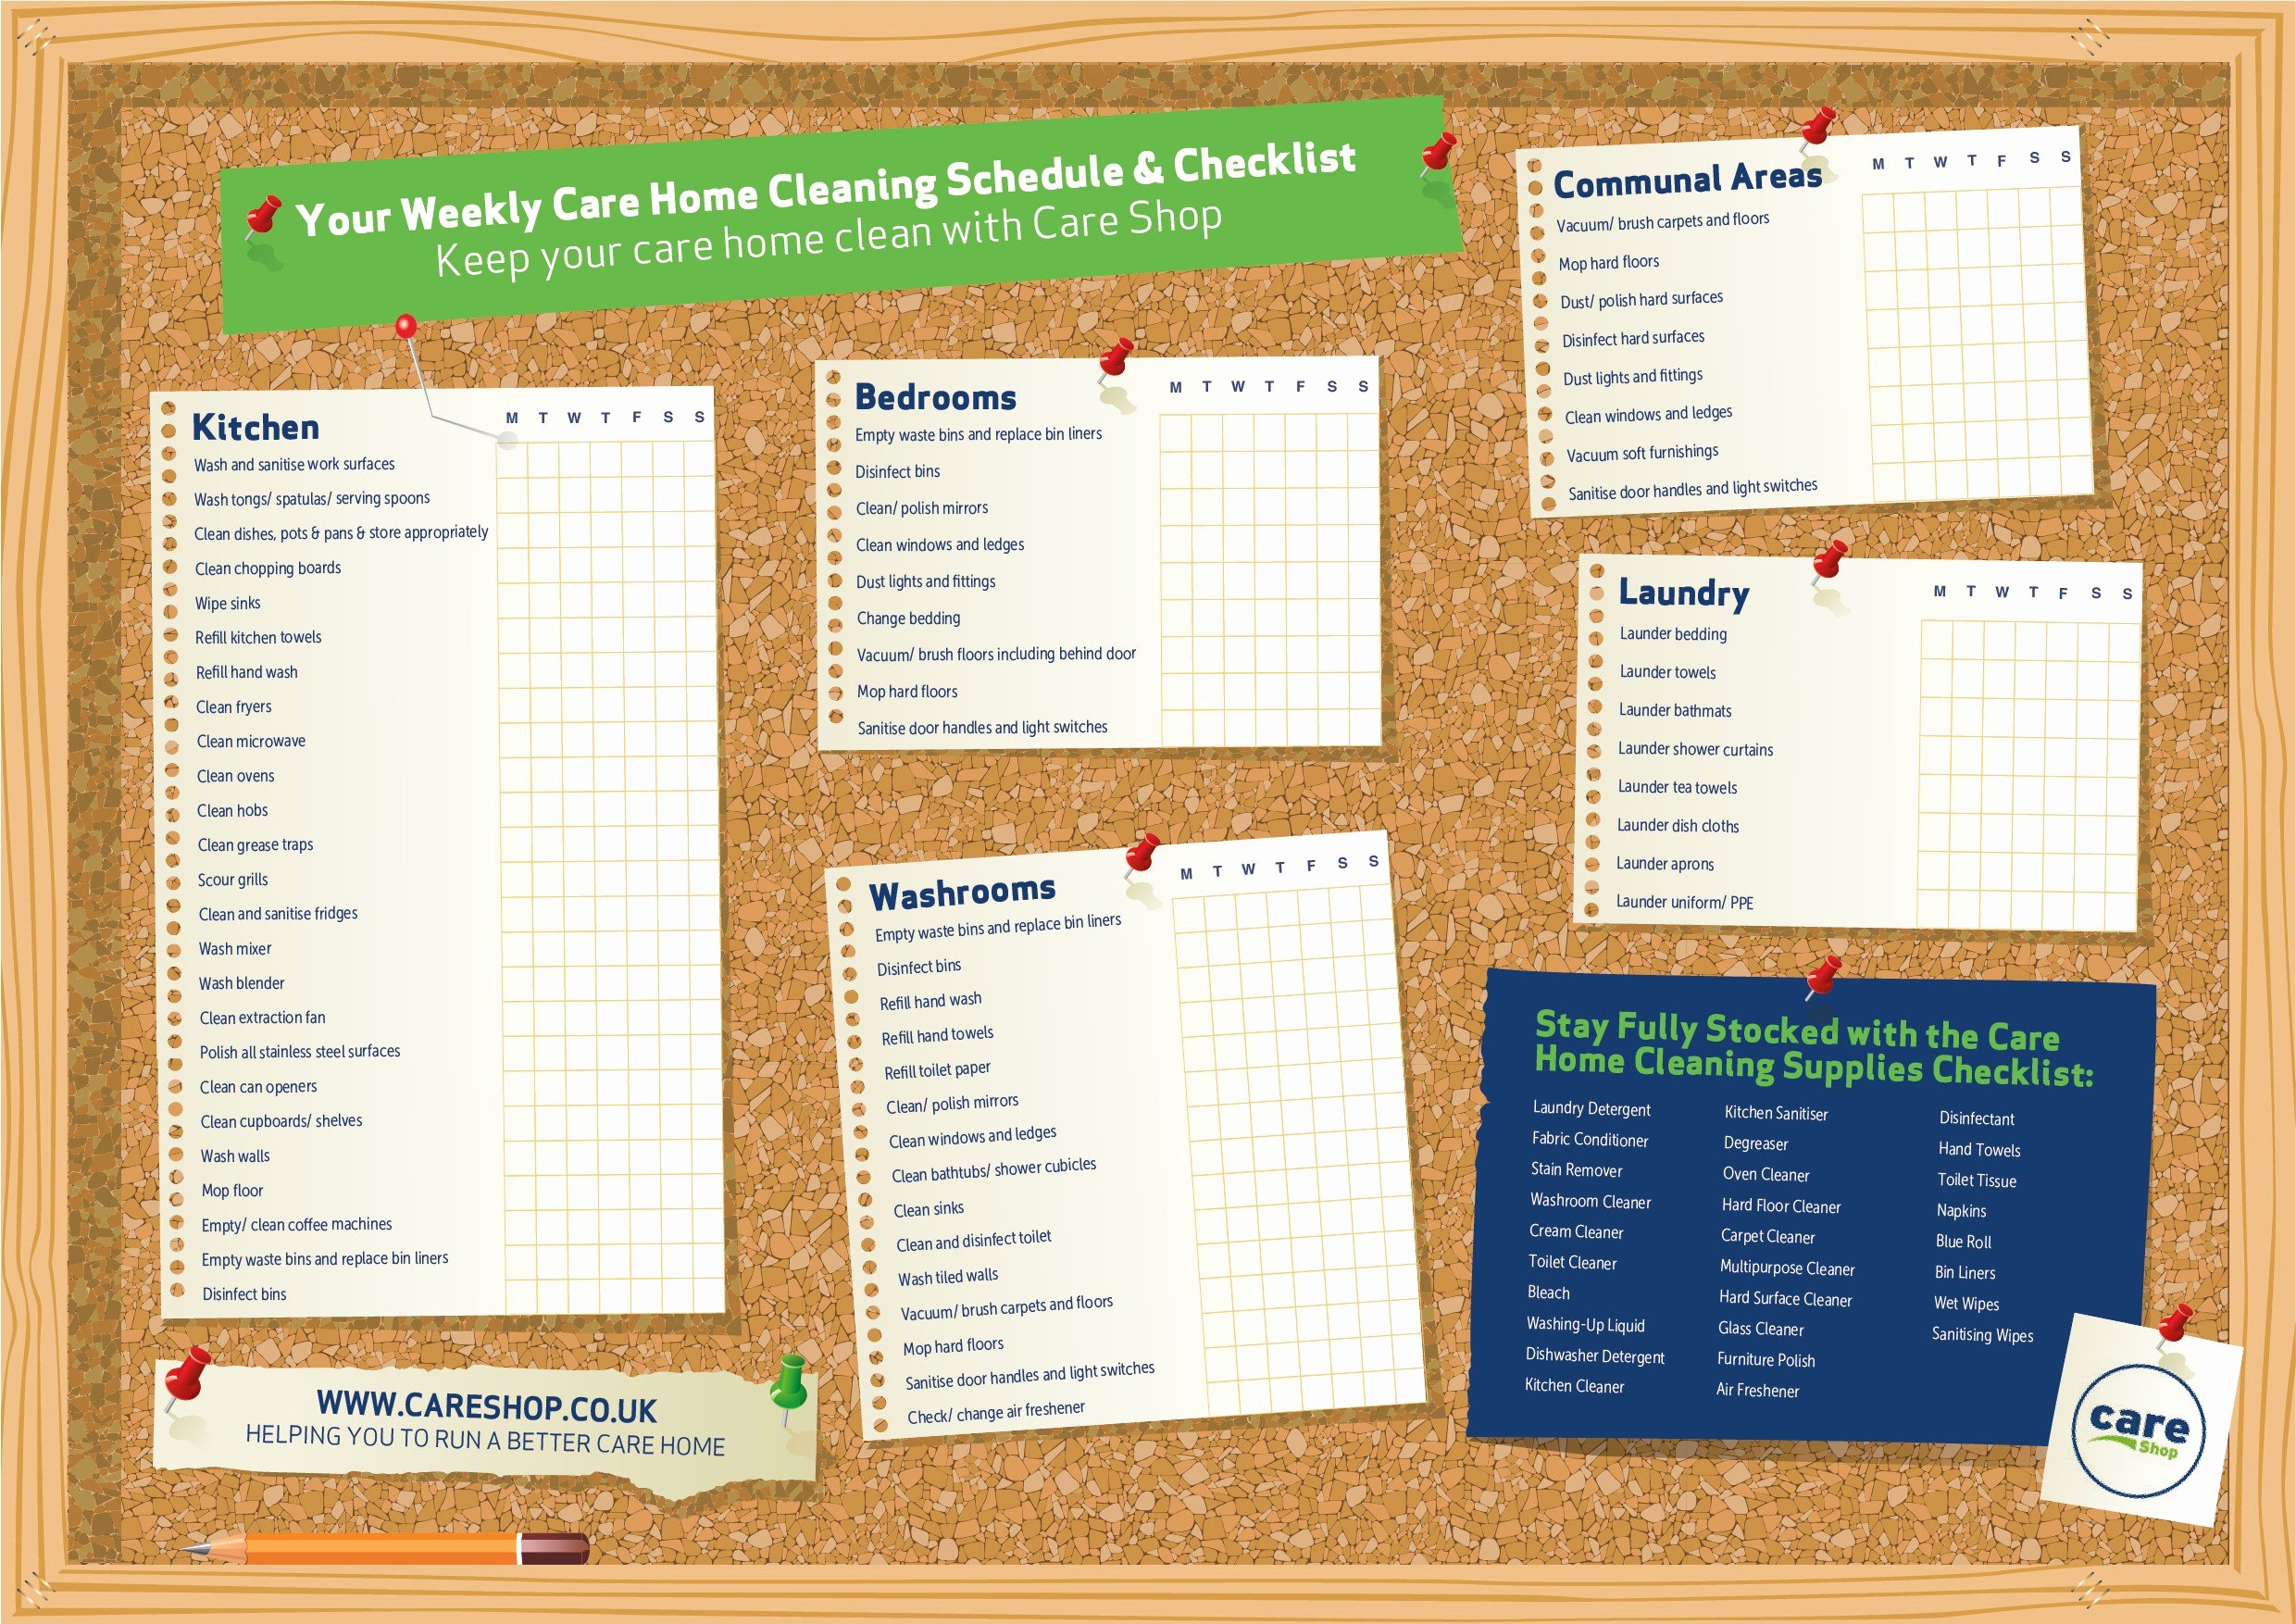 House Cleaning Schedule Template Fresh Free Download Your Care Home Cleaning Schedule